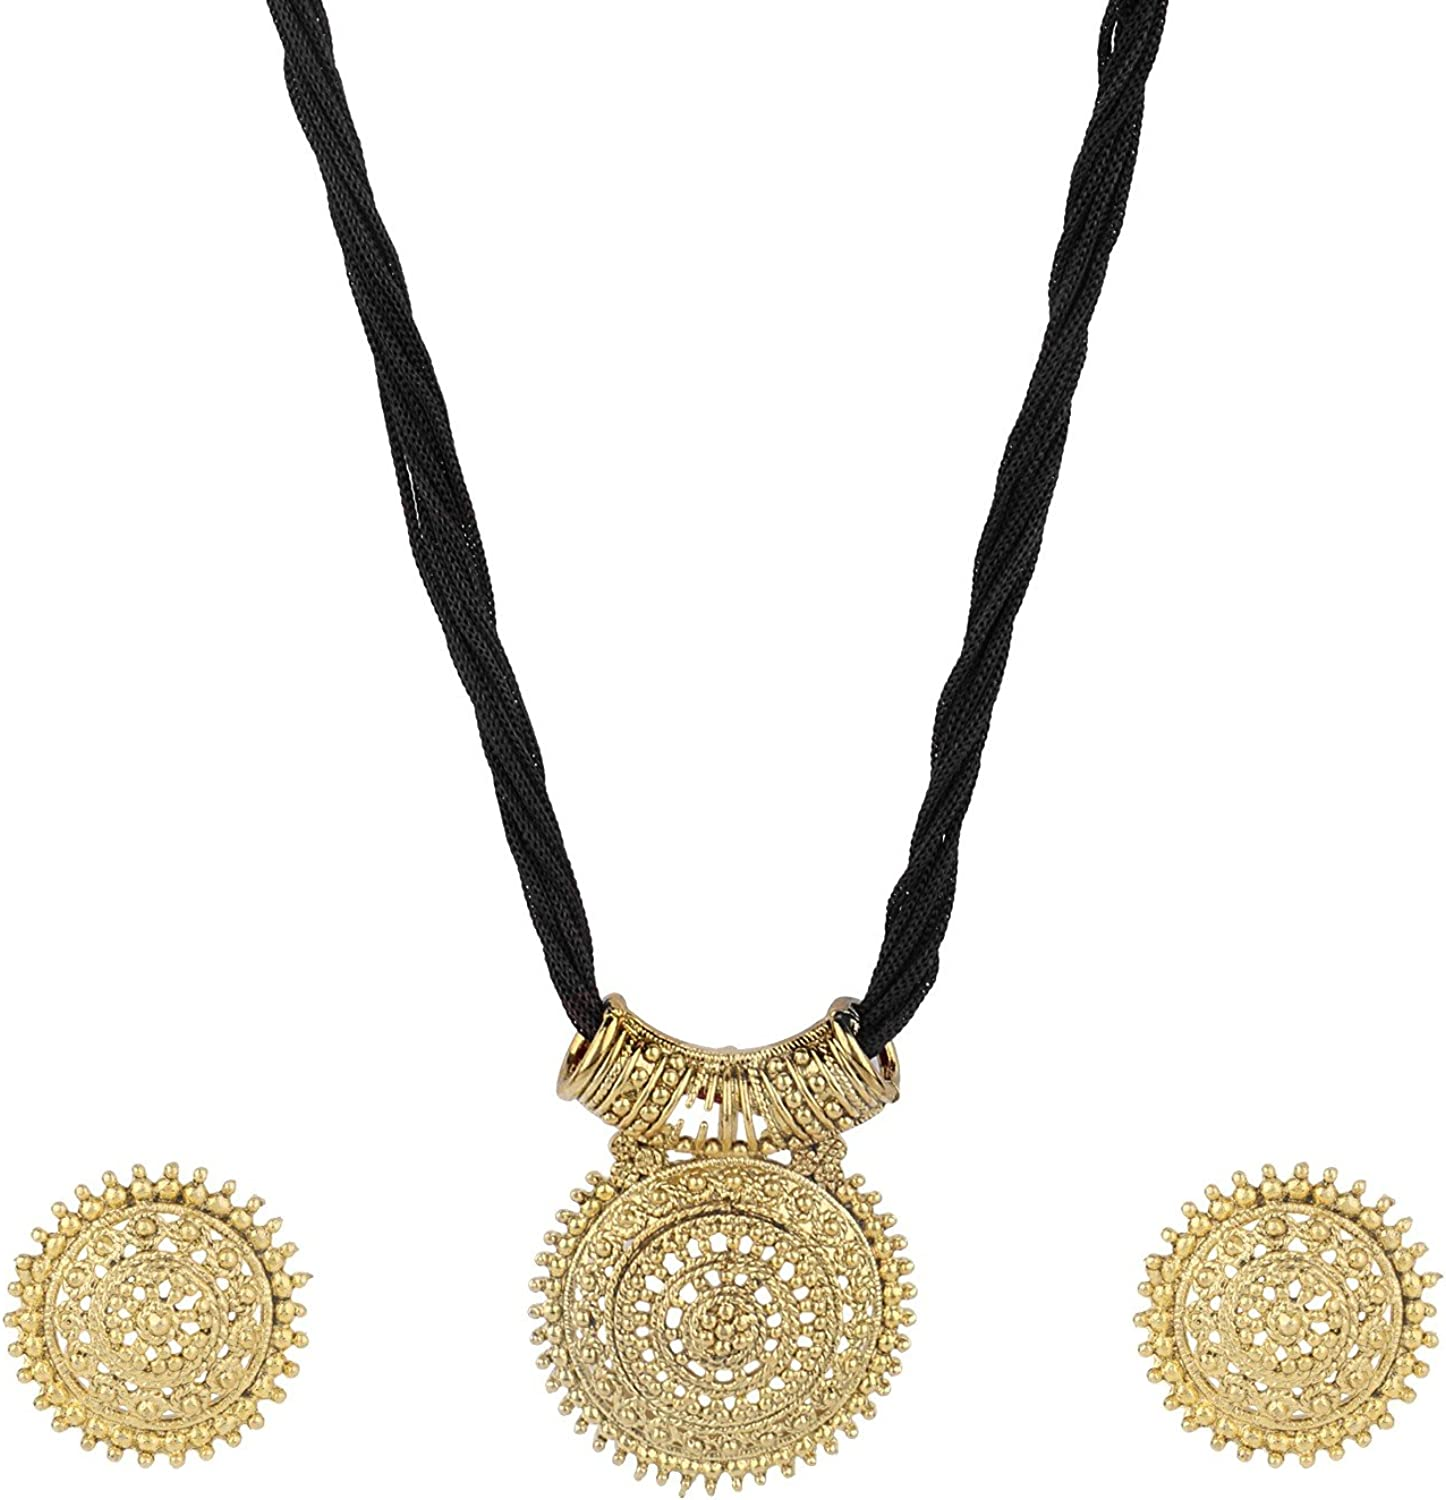 Efulgenz Indian Ethnic Bollywood Designer Necklace and Earrings Jewelry Set in Antique 18K Gold Tone for Women and Girls